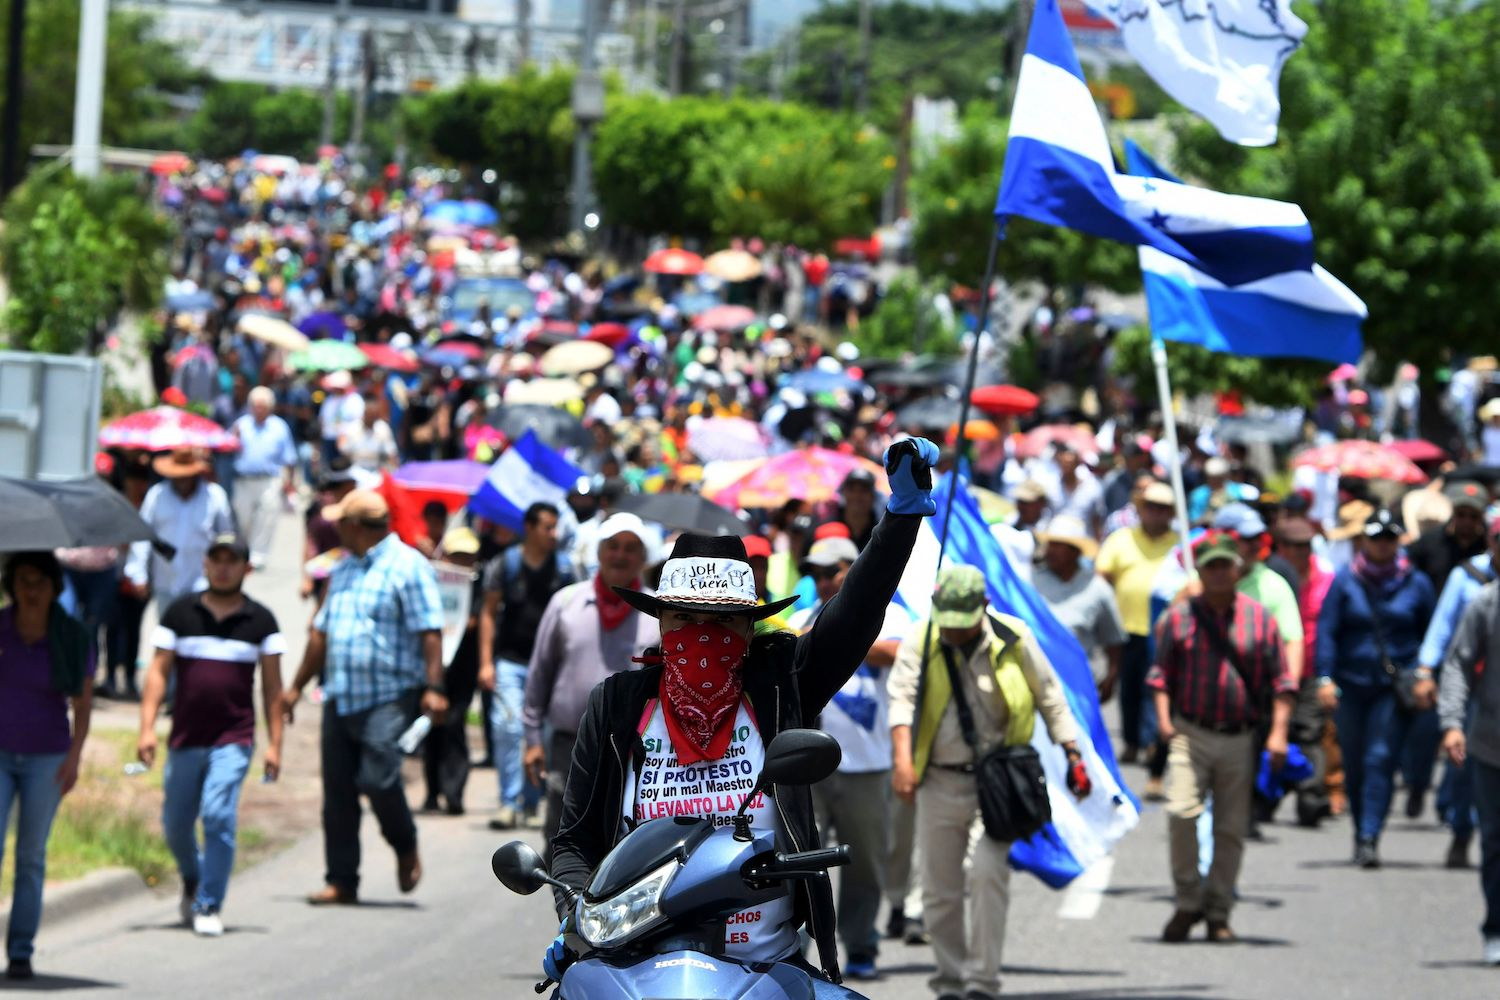 honduran protesters have little